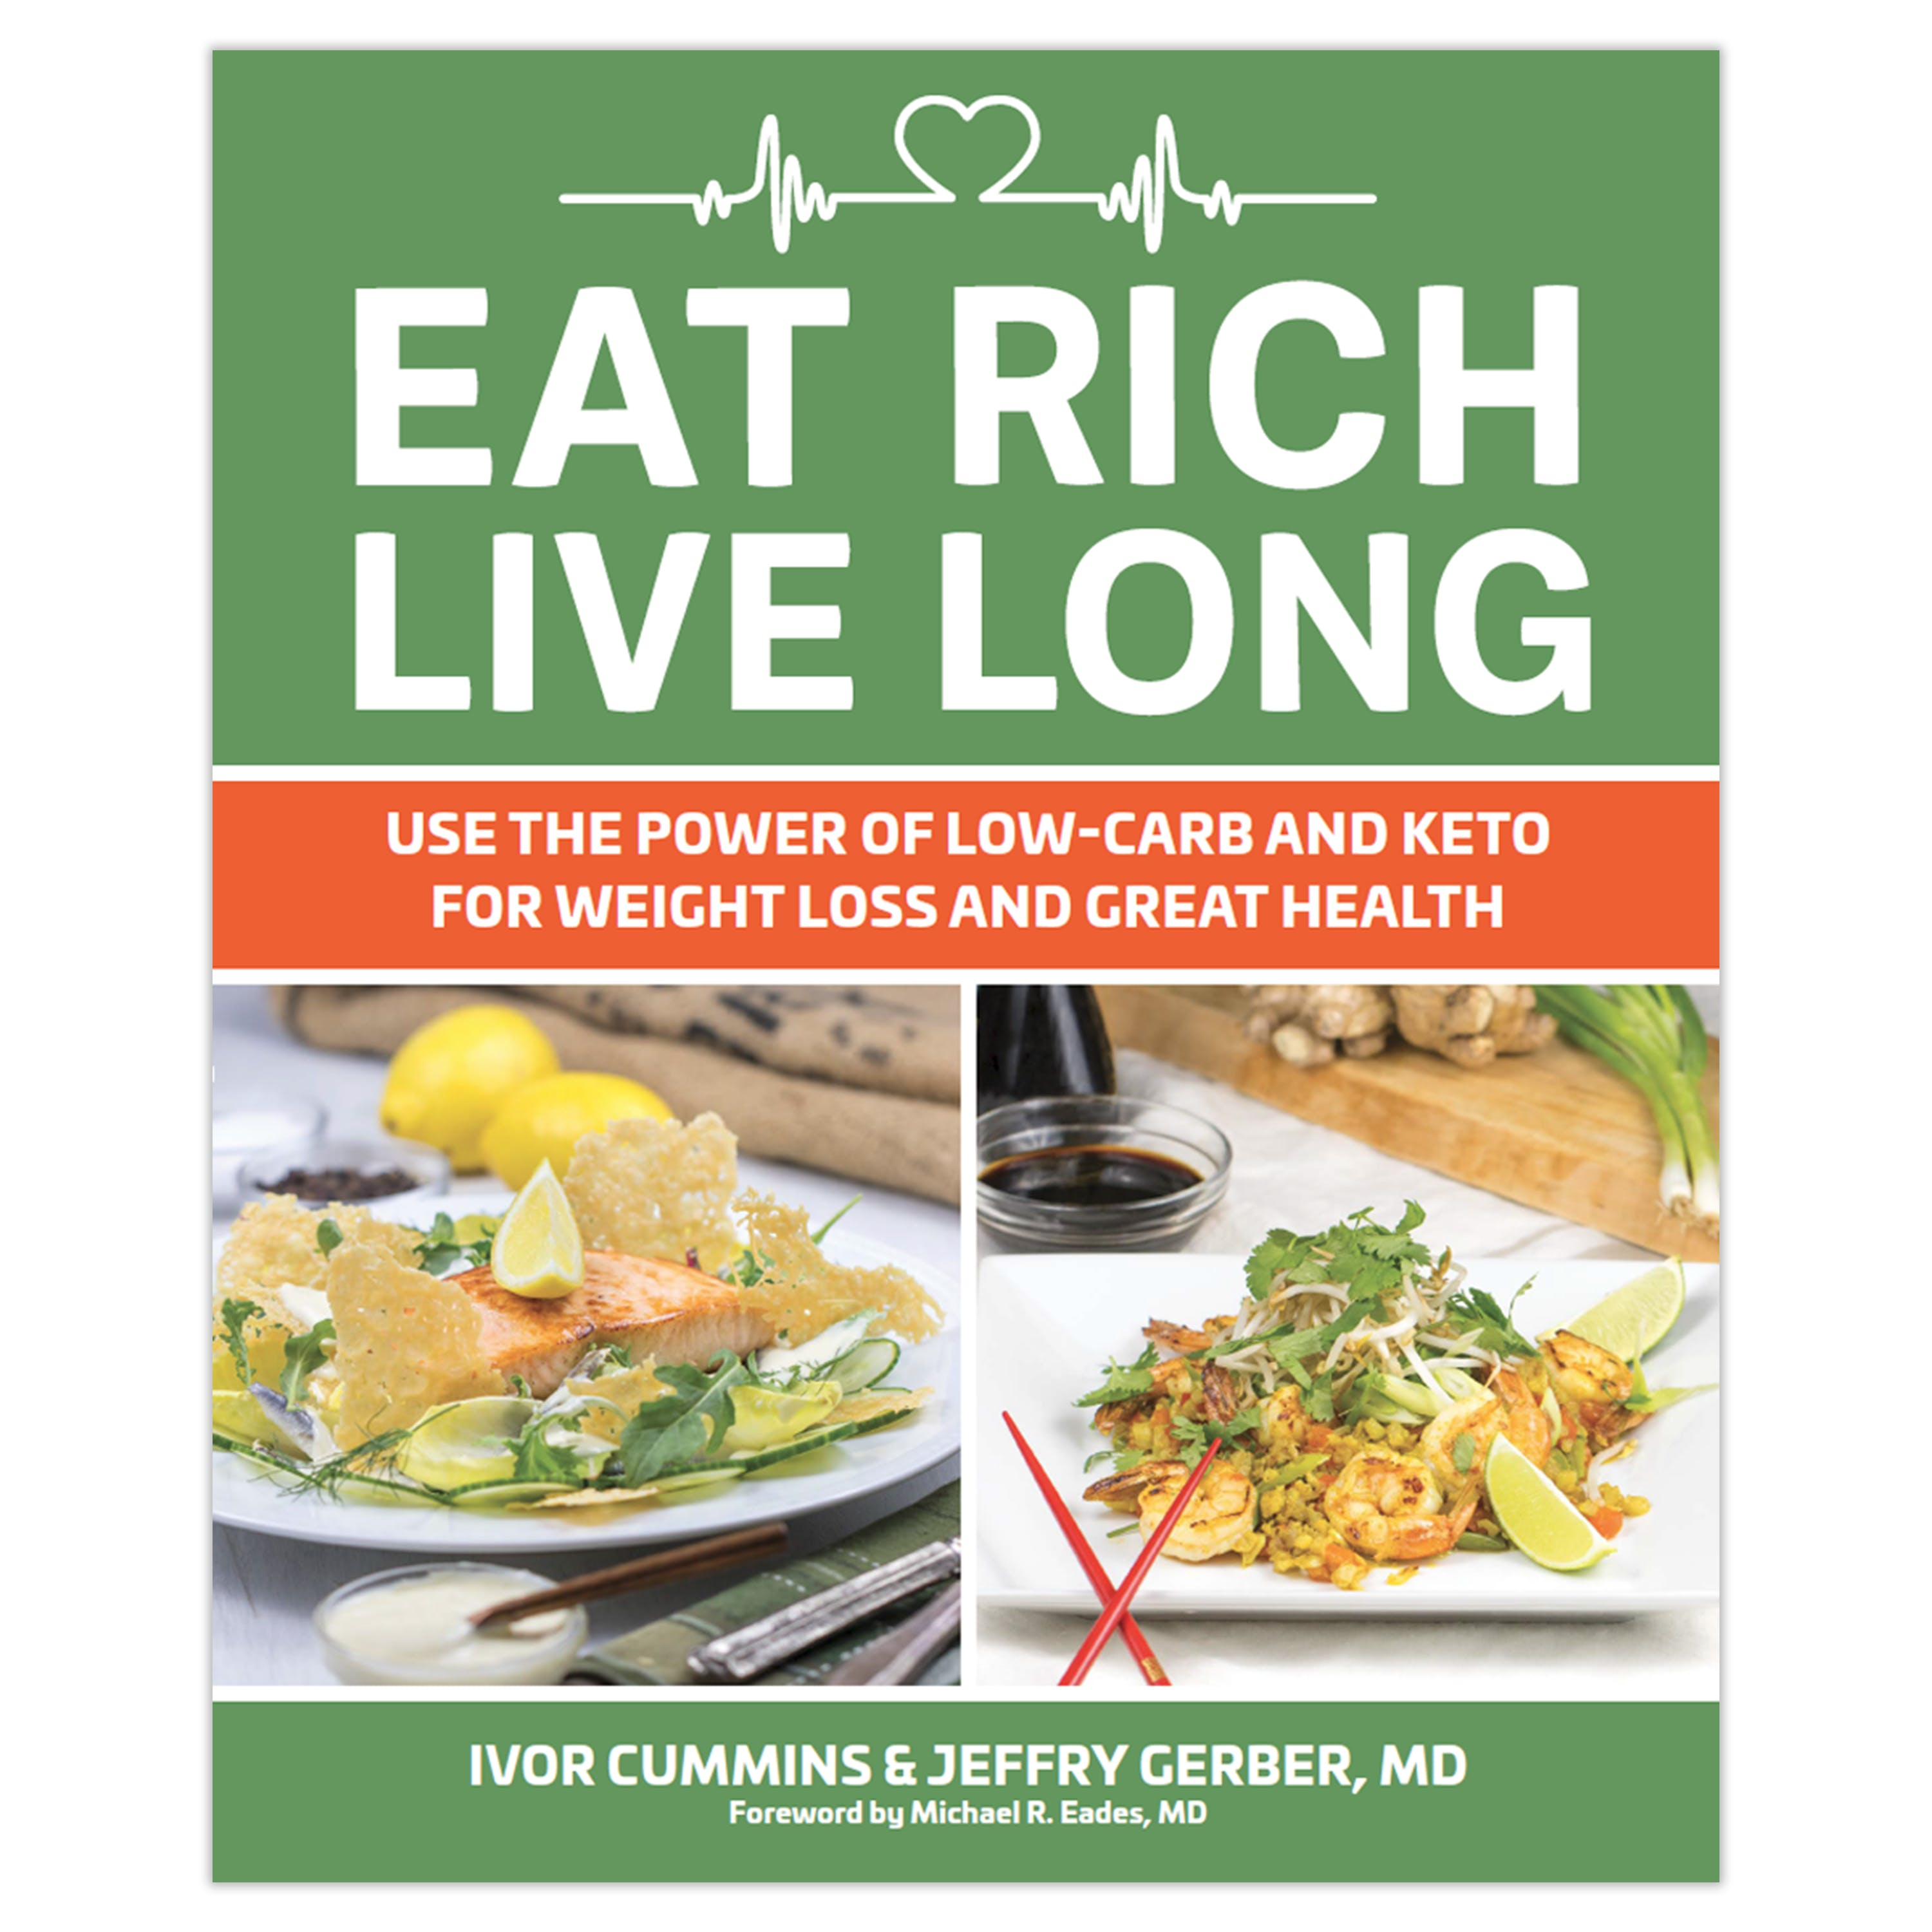 New keto book: Eat Rich, Live Long